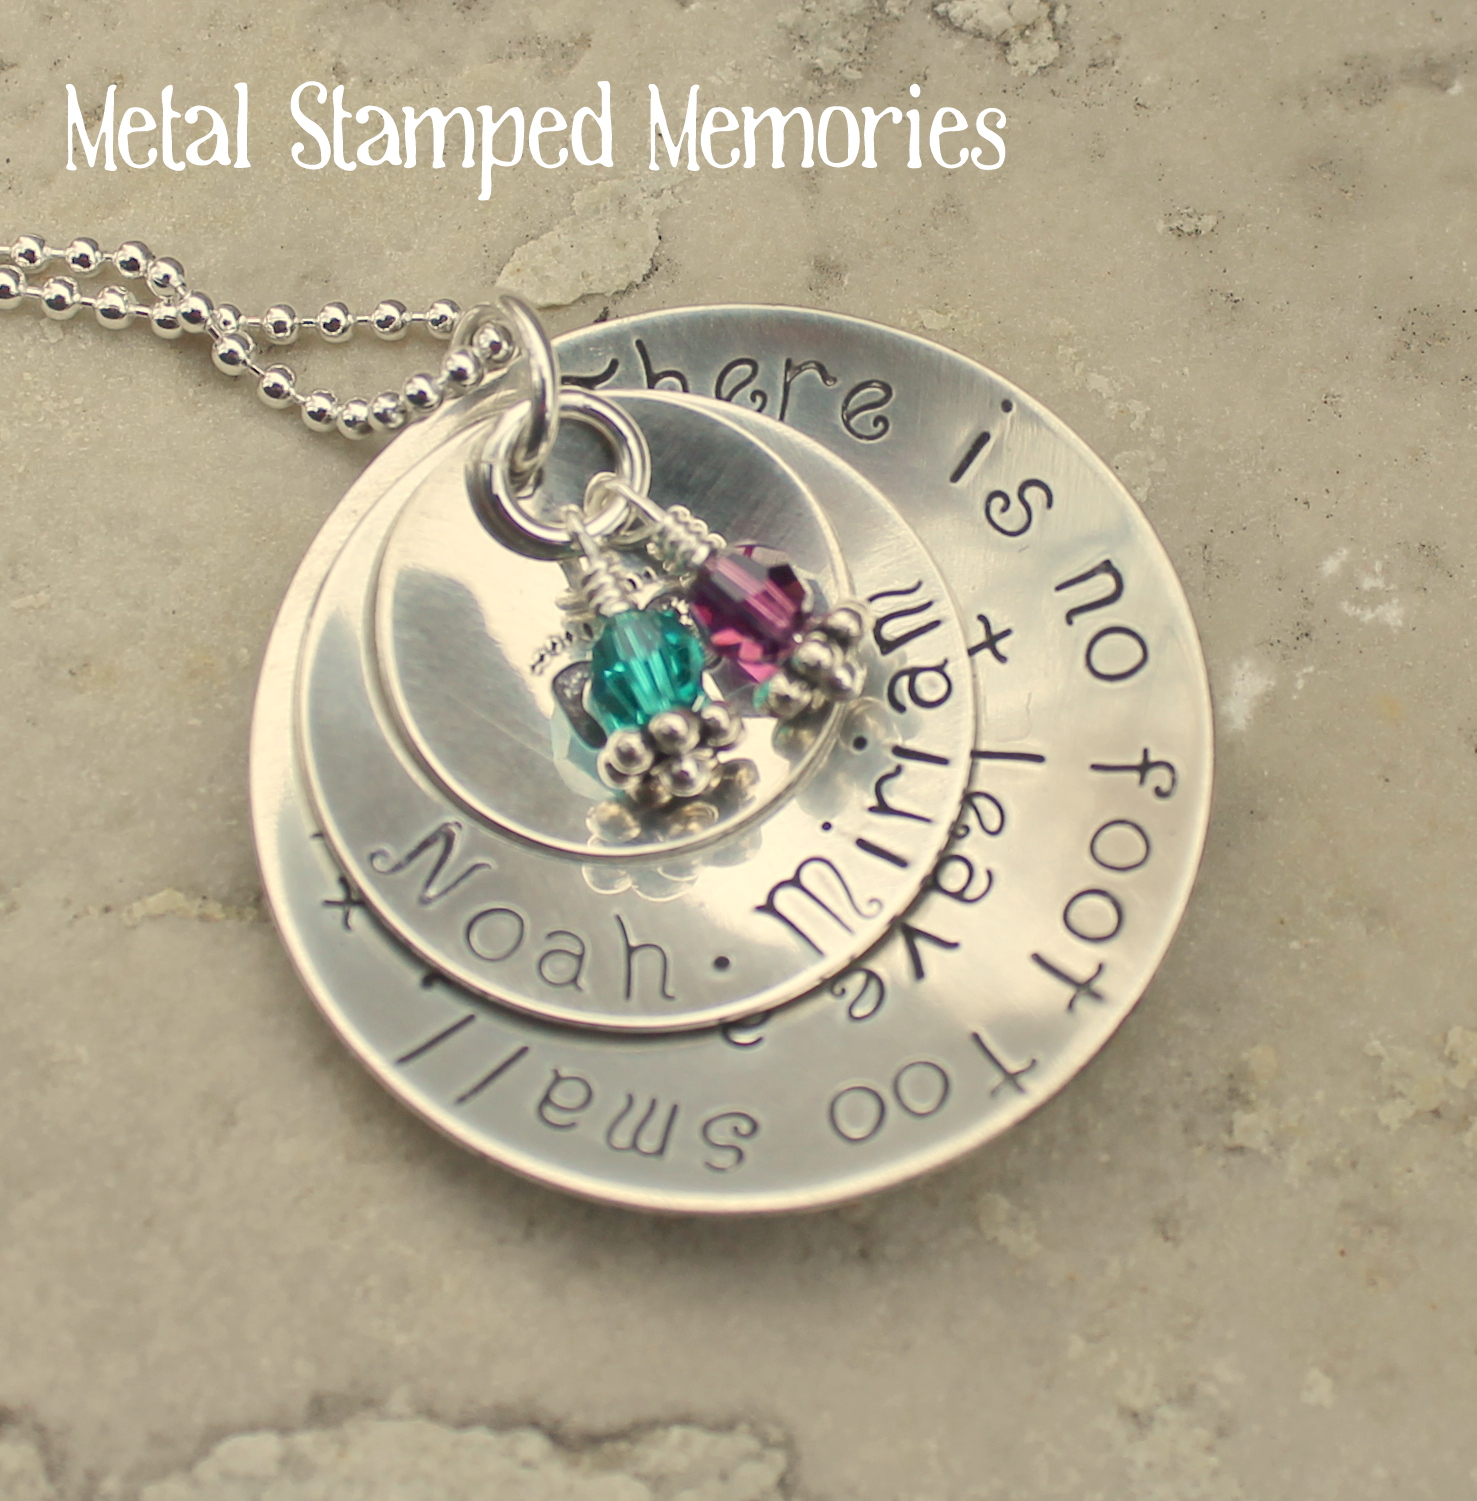 gallery necklace memory pjto gifts away photo jewelry listing going memorial il fullxfull graduation